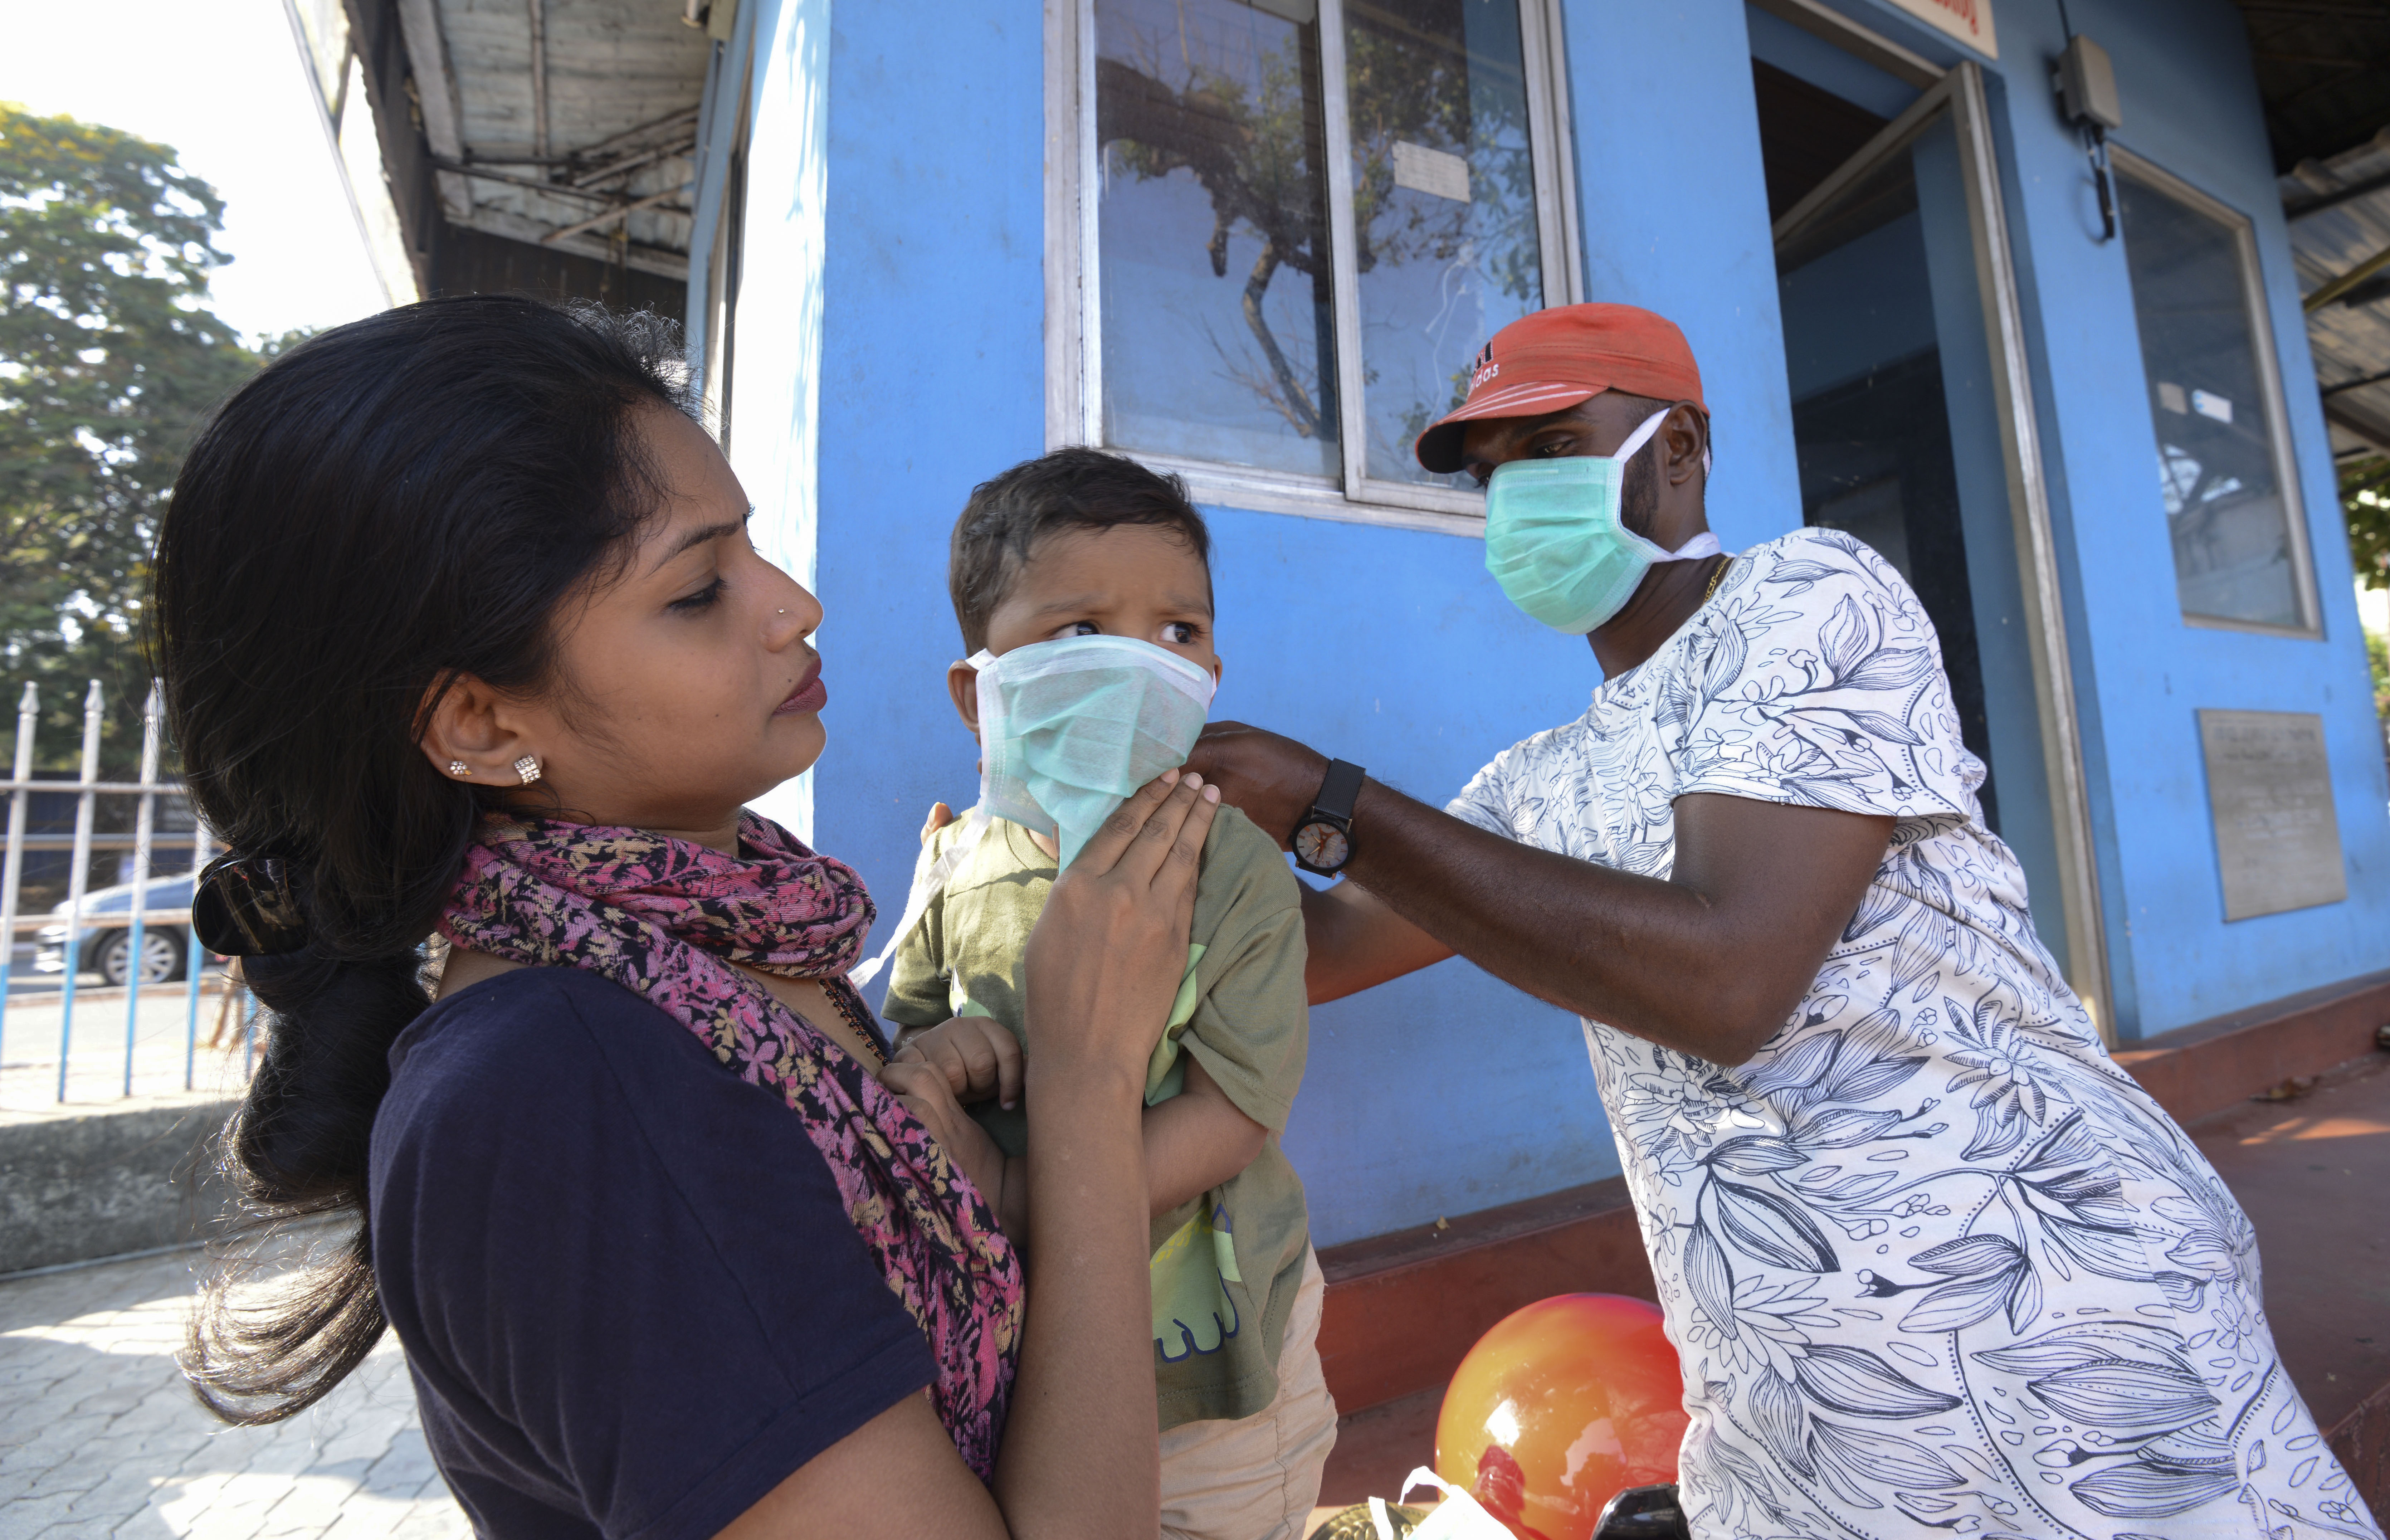 A man wearing a surgical mask makes a child wear one outside the government general hospital where a student who had been in Wuhan is kept in isolation in Thrissur, Kerala, India.